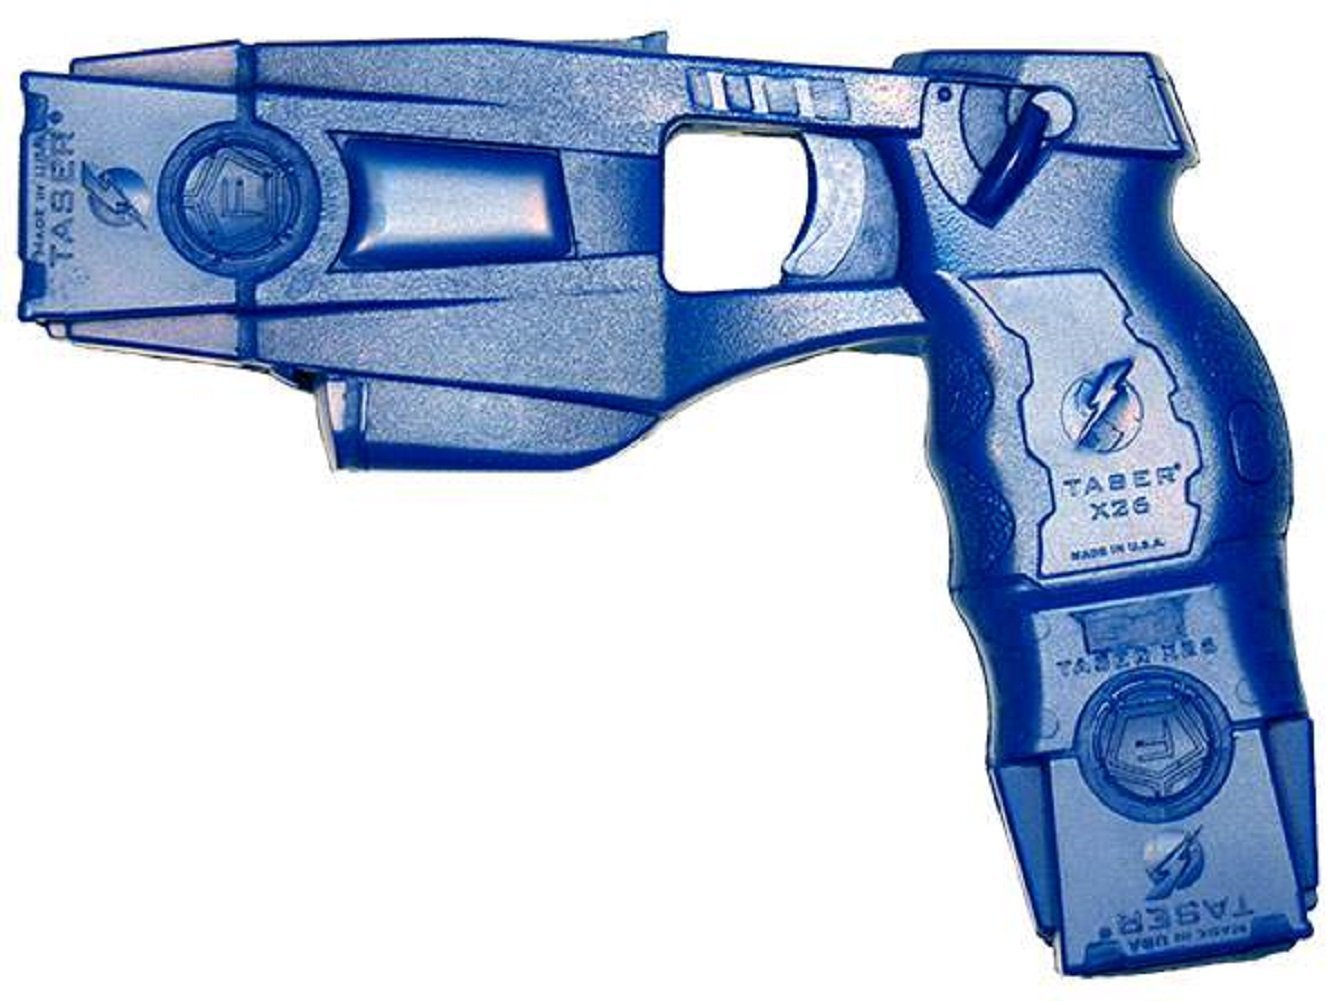 Blueguns Taser FSX26XC with Extra Cartridge Blue - CHK-SHIELD | Outdoor Army - Tactical Gear Shop